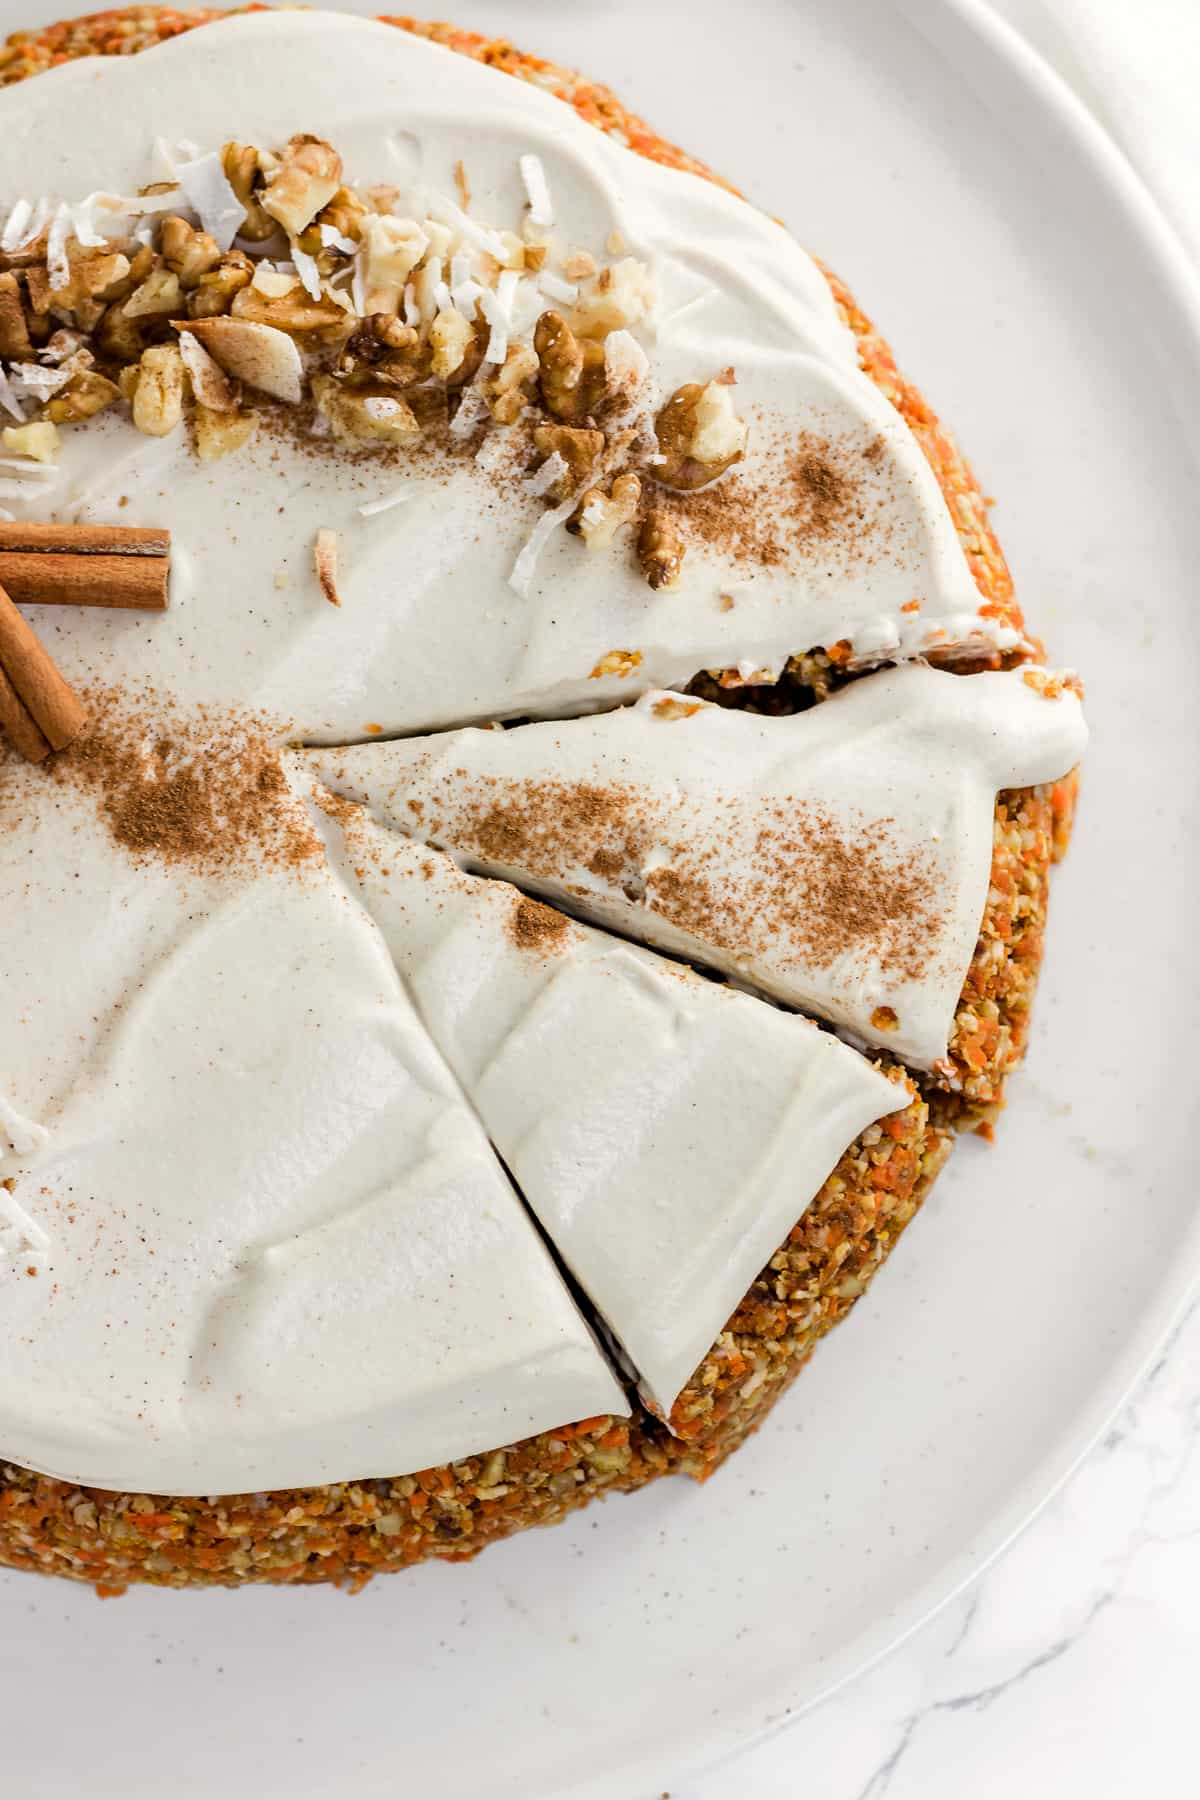 Healthy Carrot Cake With Cashew Frosting